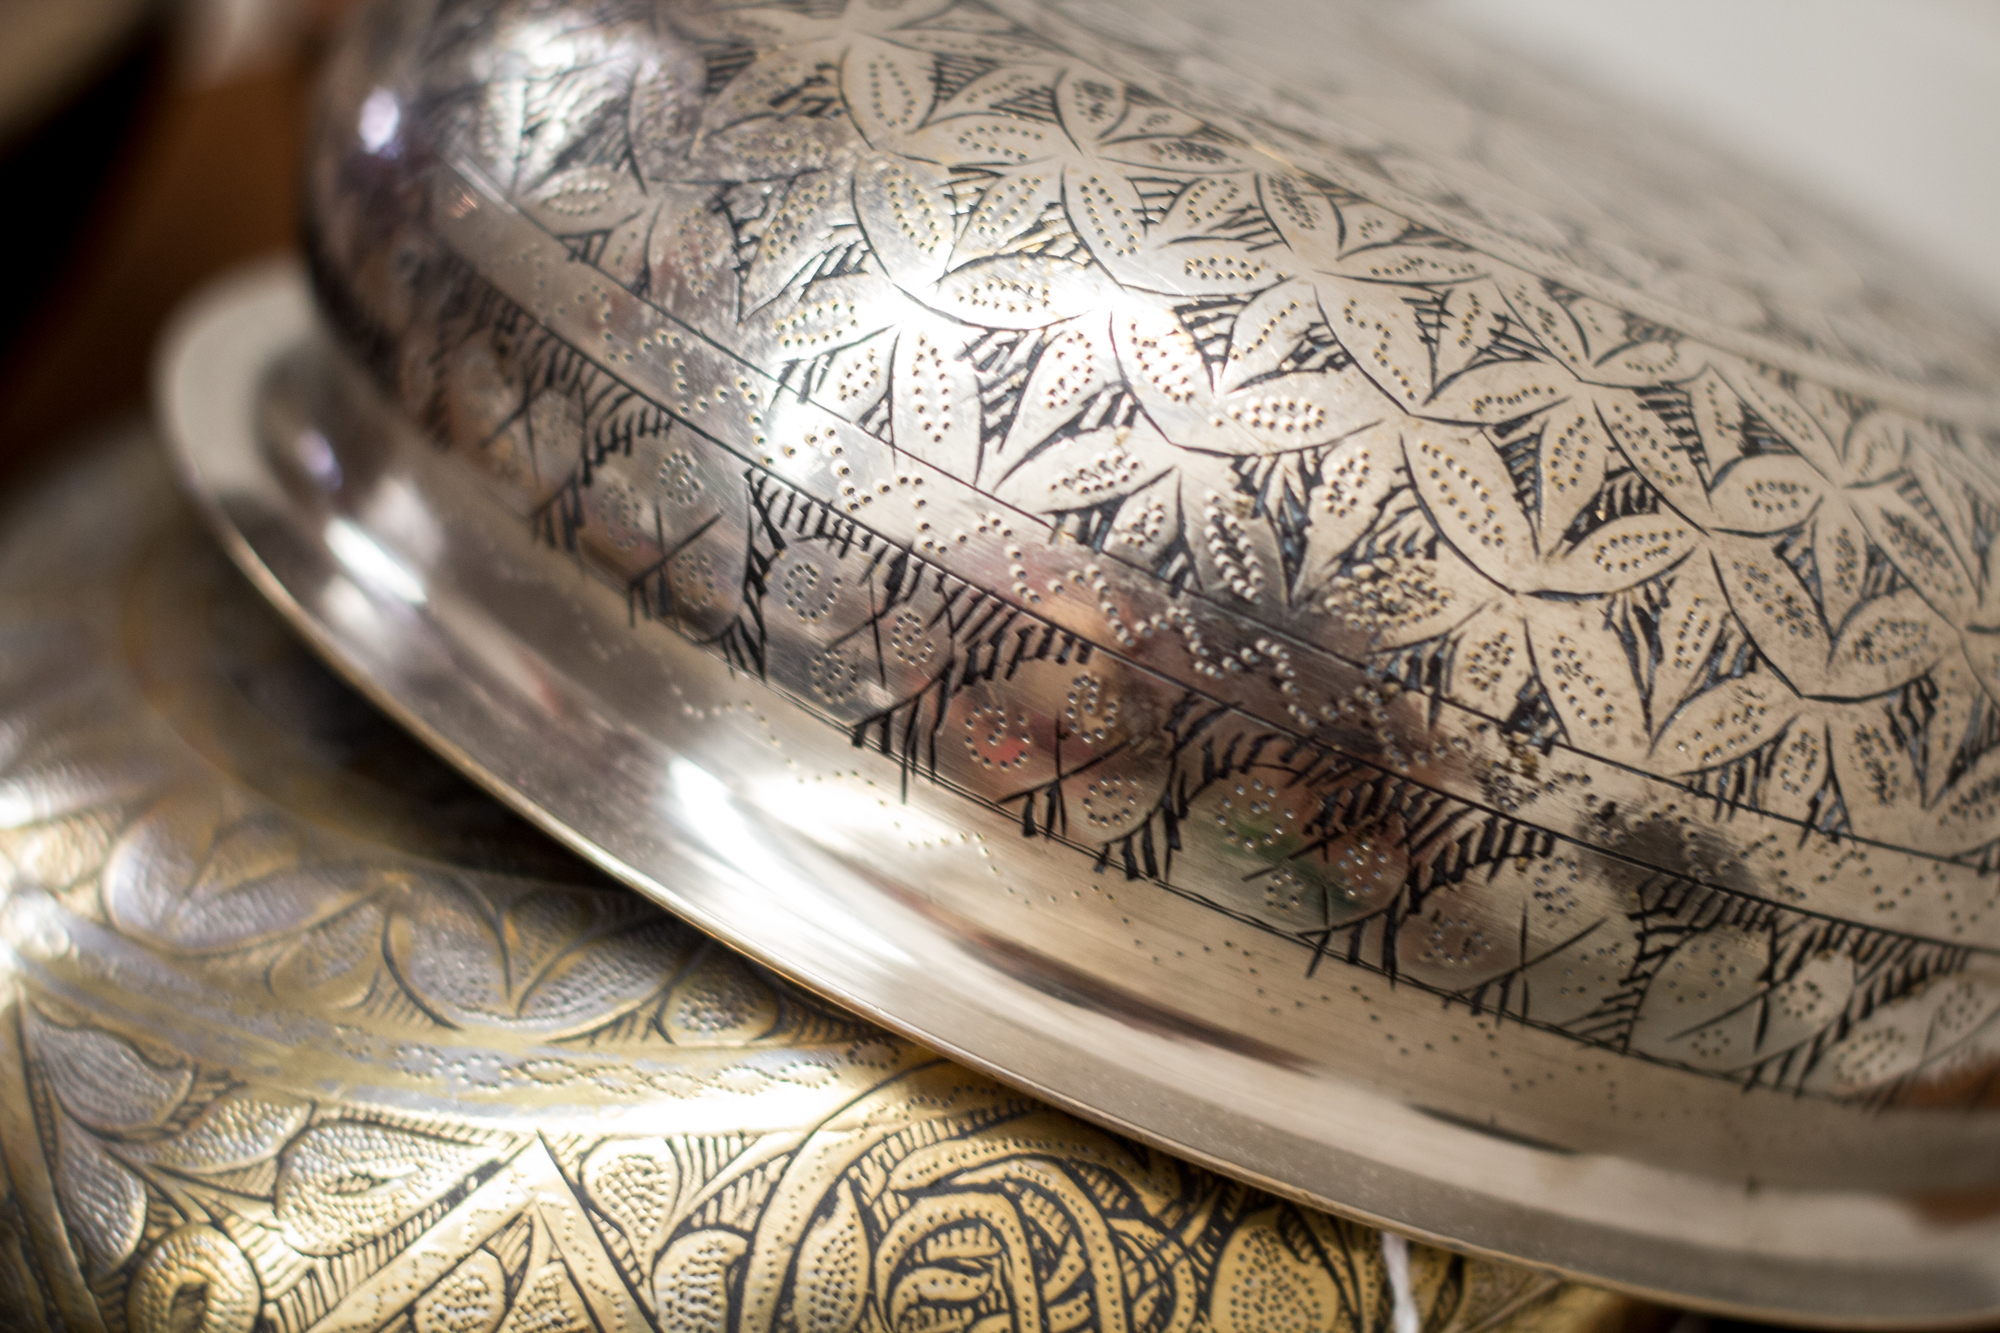 Ottoman Period 19th Century Hamam engraved and decorated Bowls